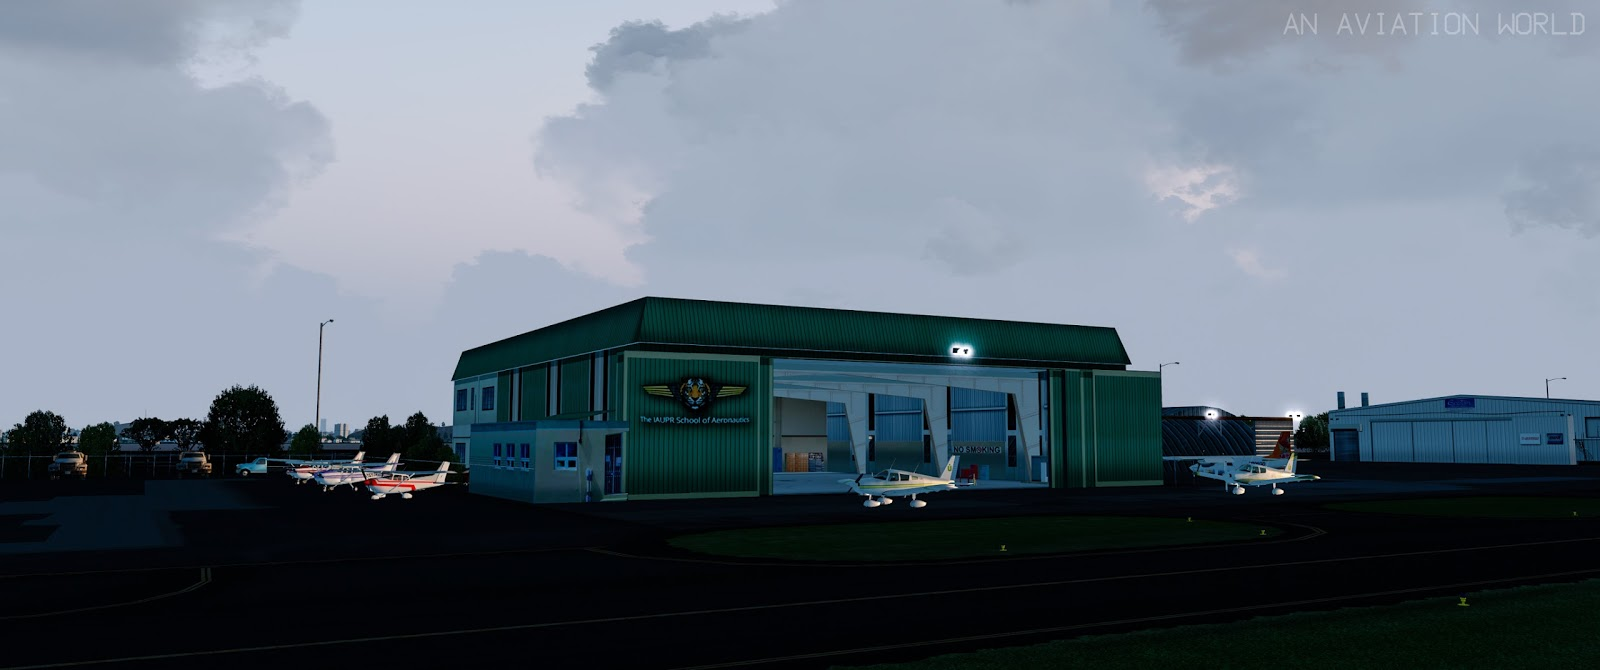 Photorico Scenery Dominicci Airport for FSX/P3D - Review